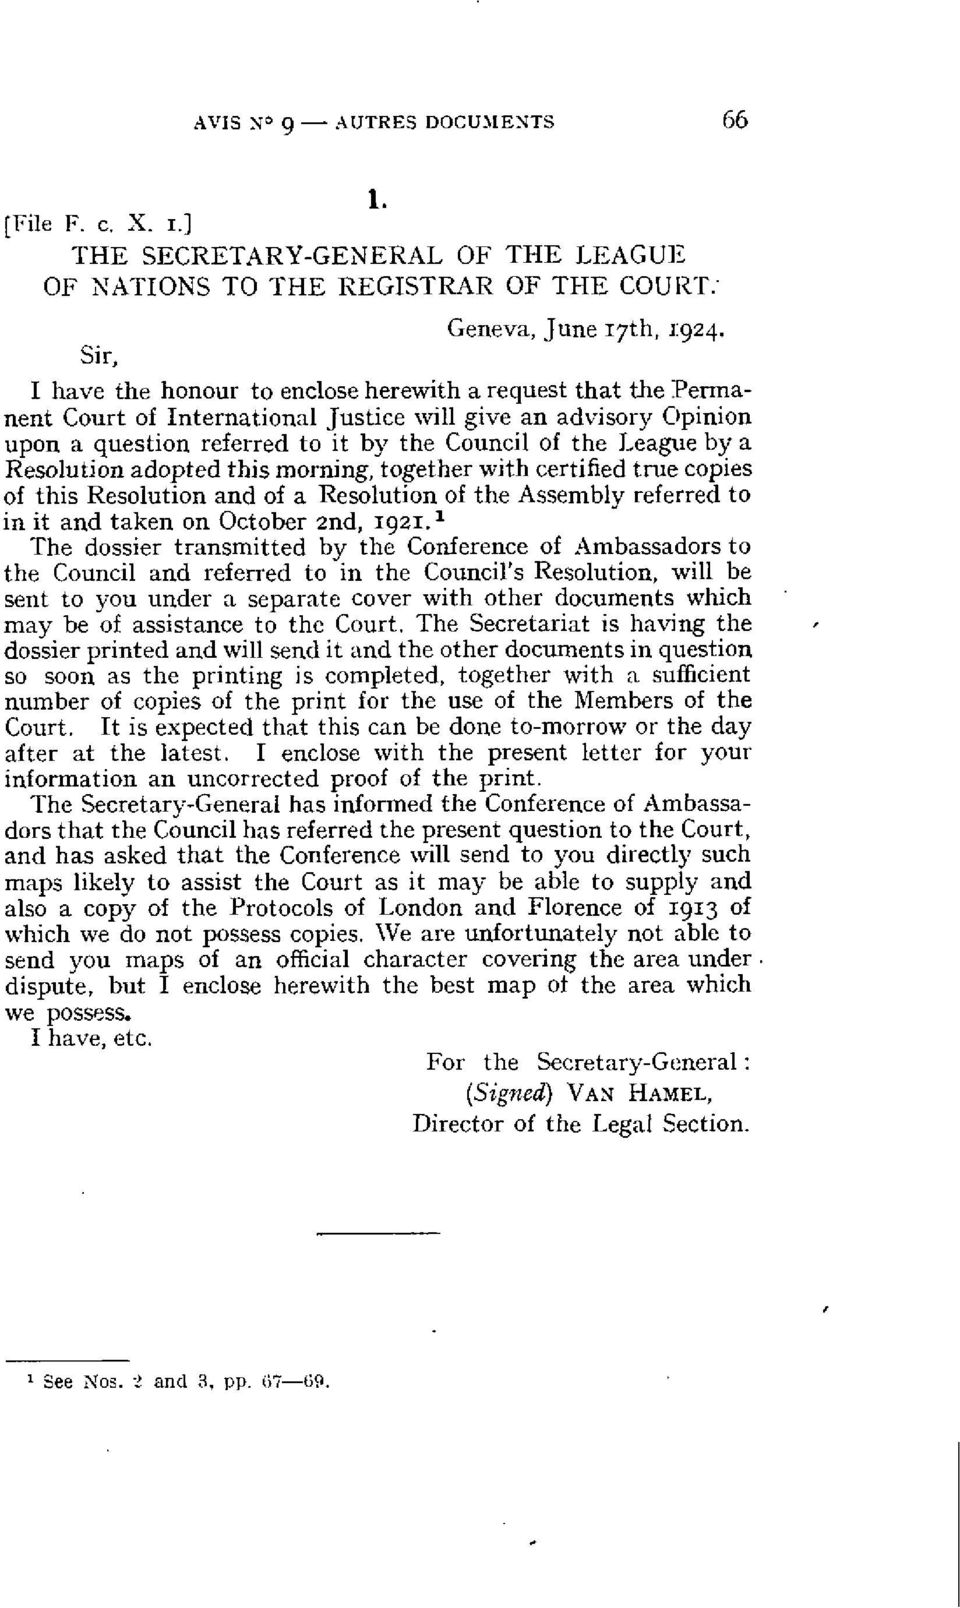 Resolulion adopted this morning, together with certified true copies of this Resolution and of a Resolution of the Assembly referred to in it and taken on October znd, 1921.